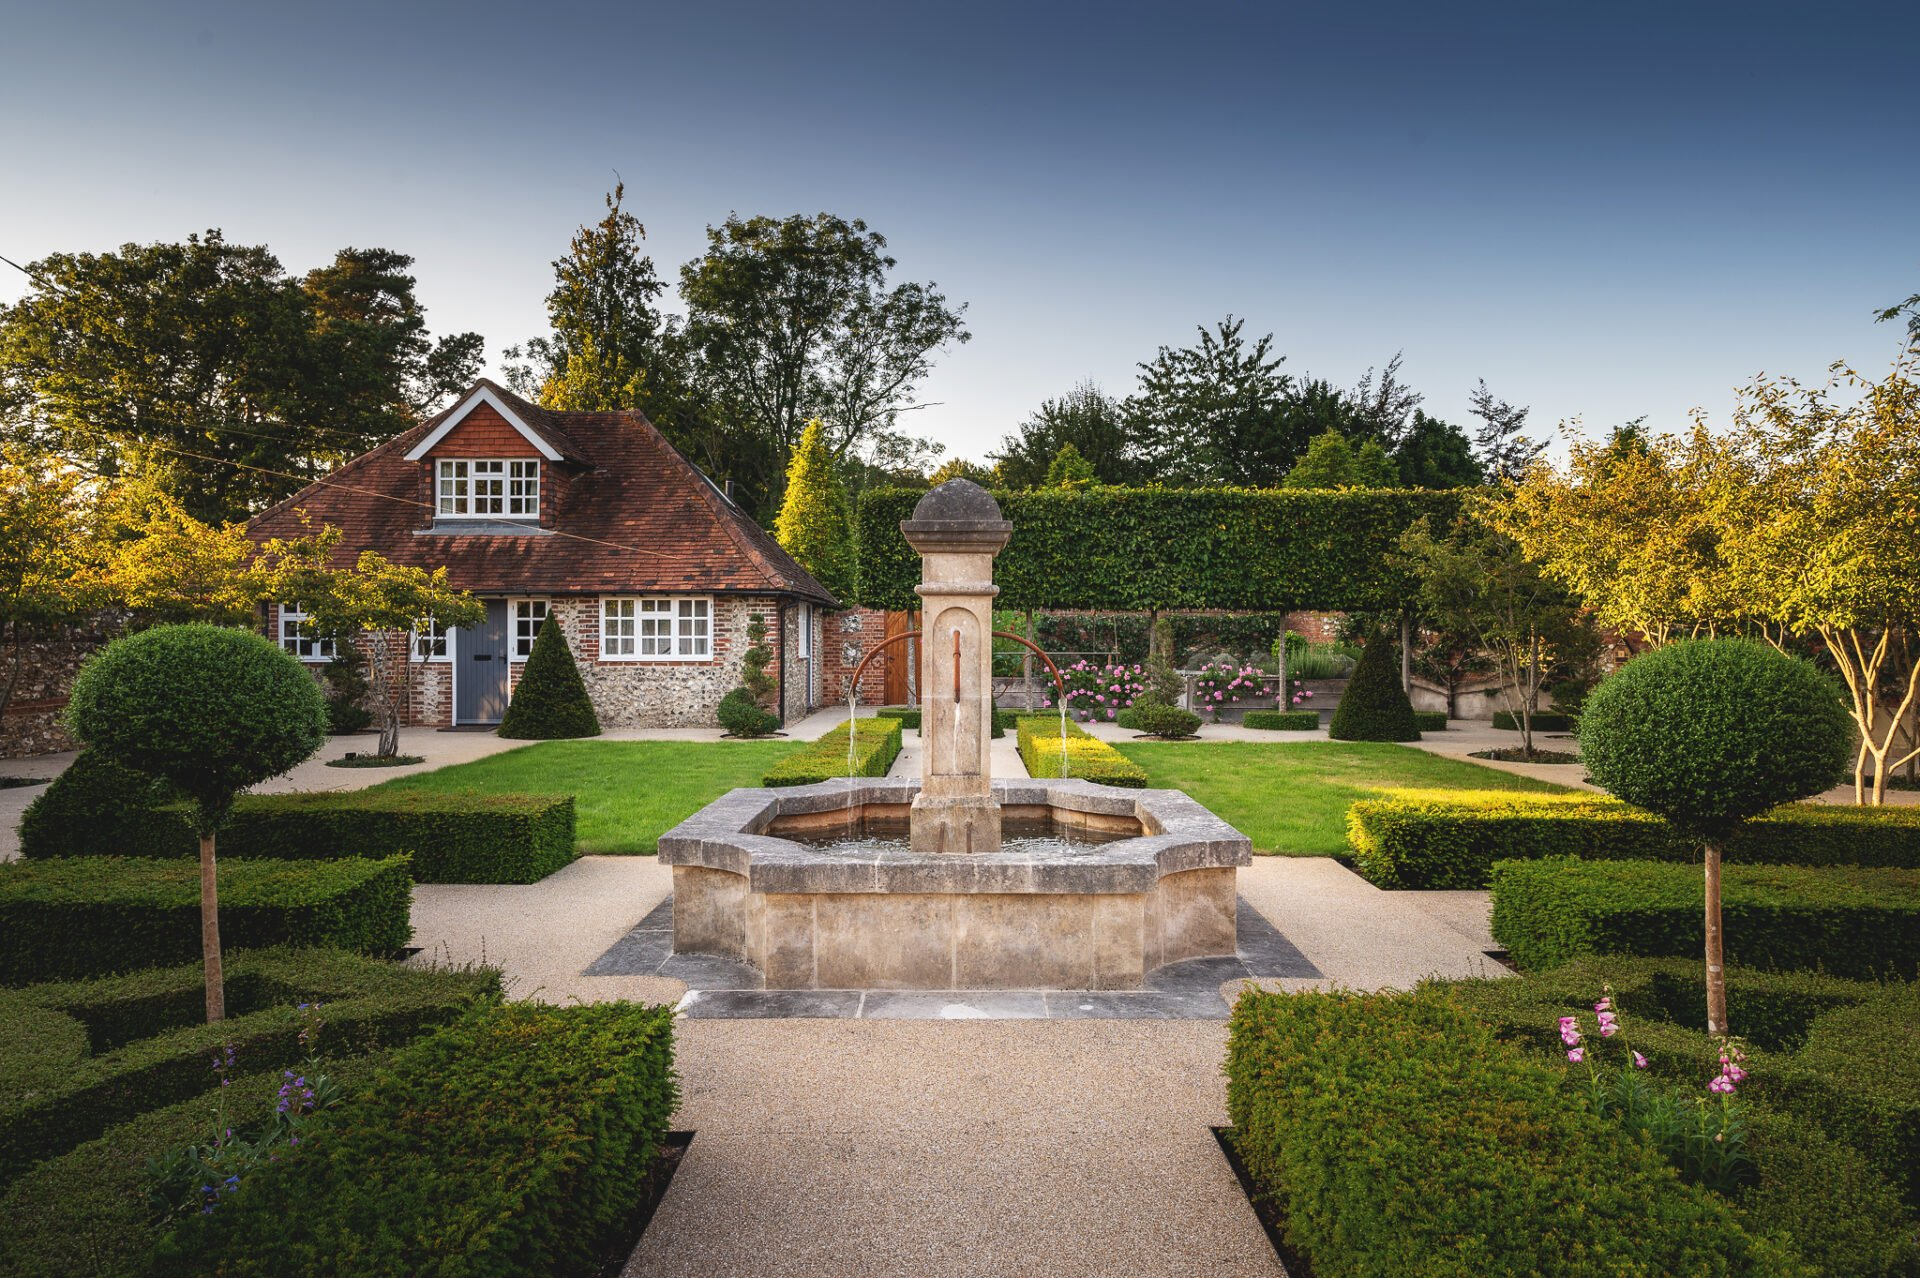 Walled garden with stone fountain